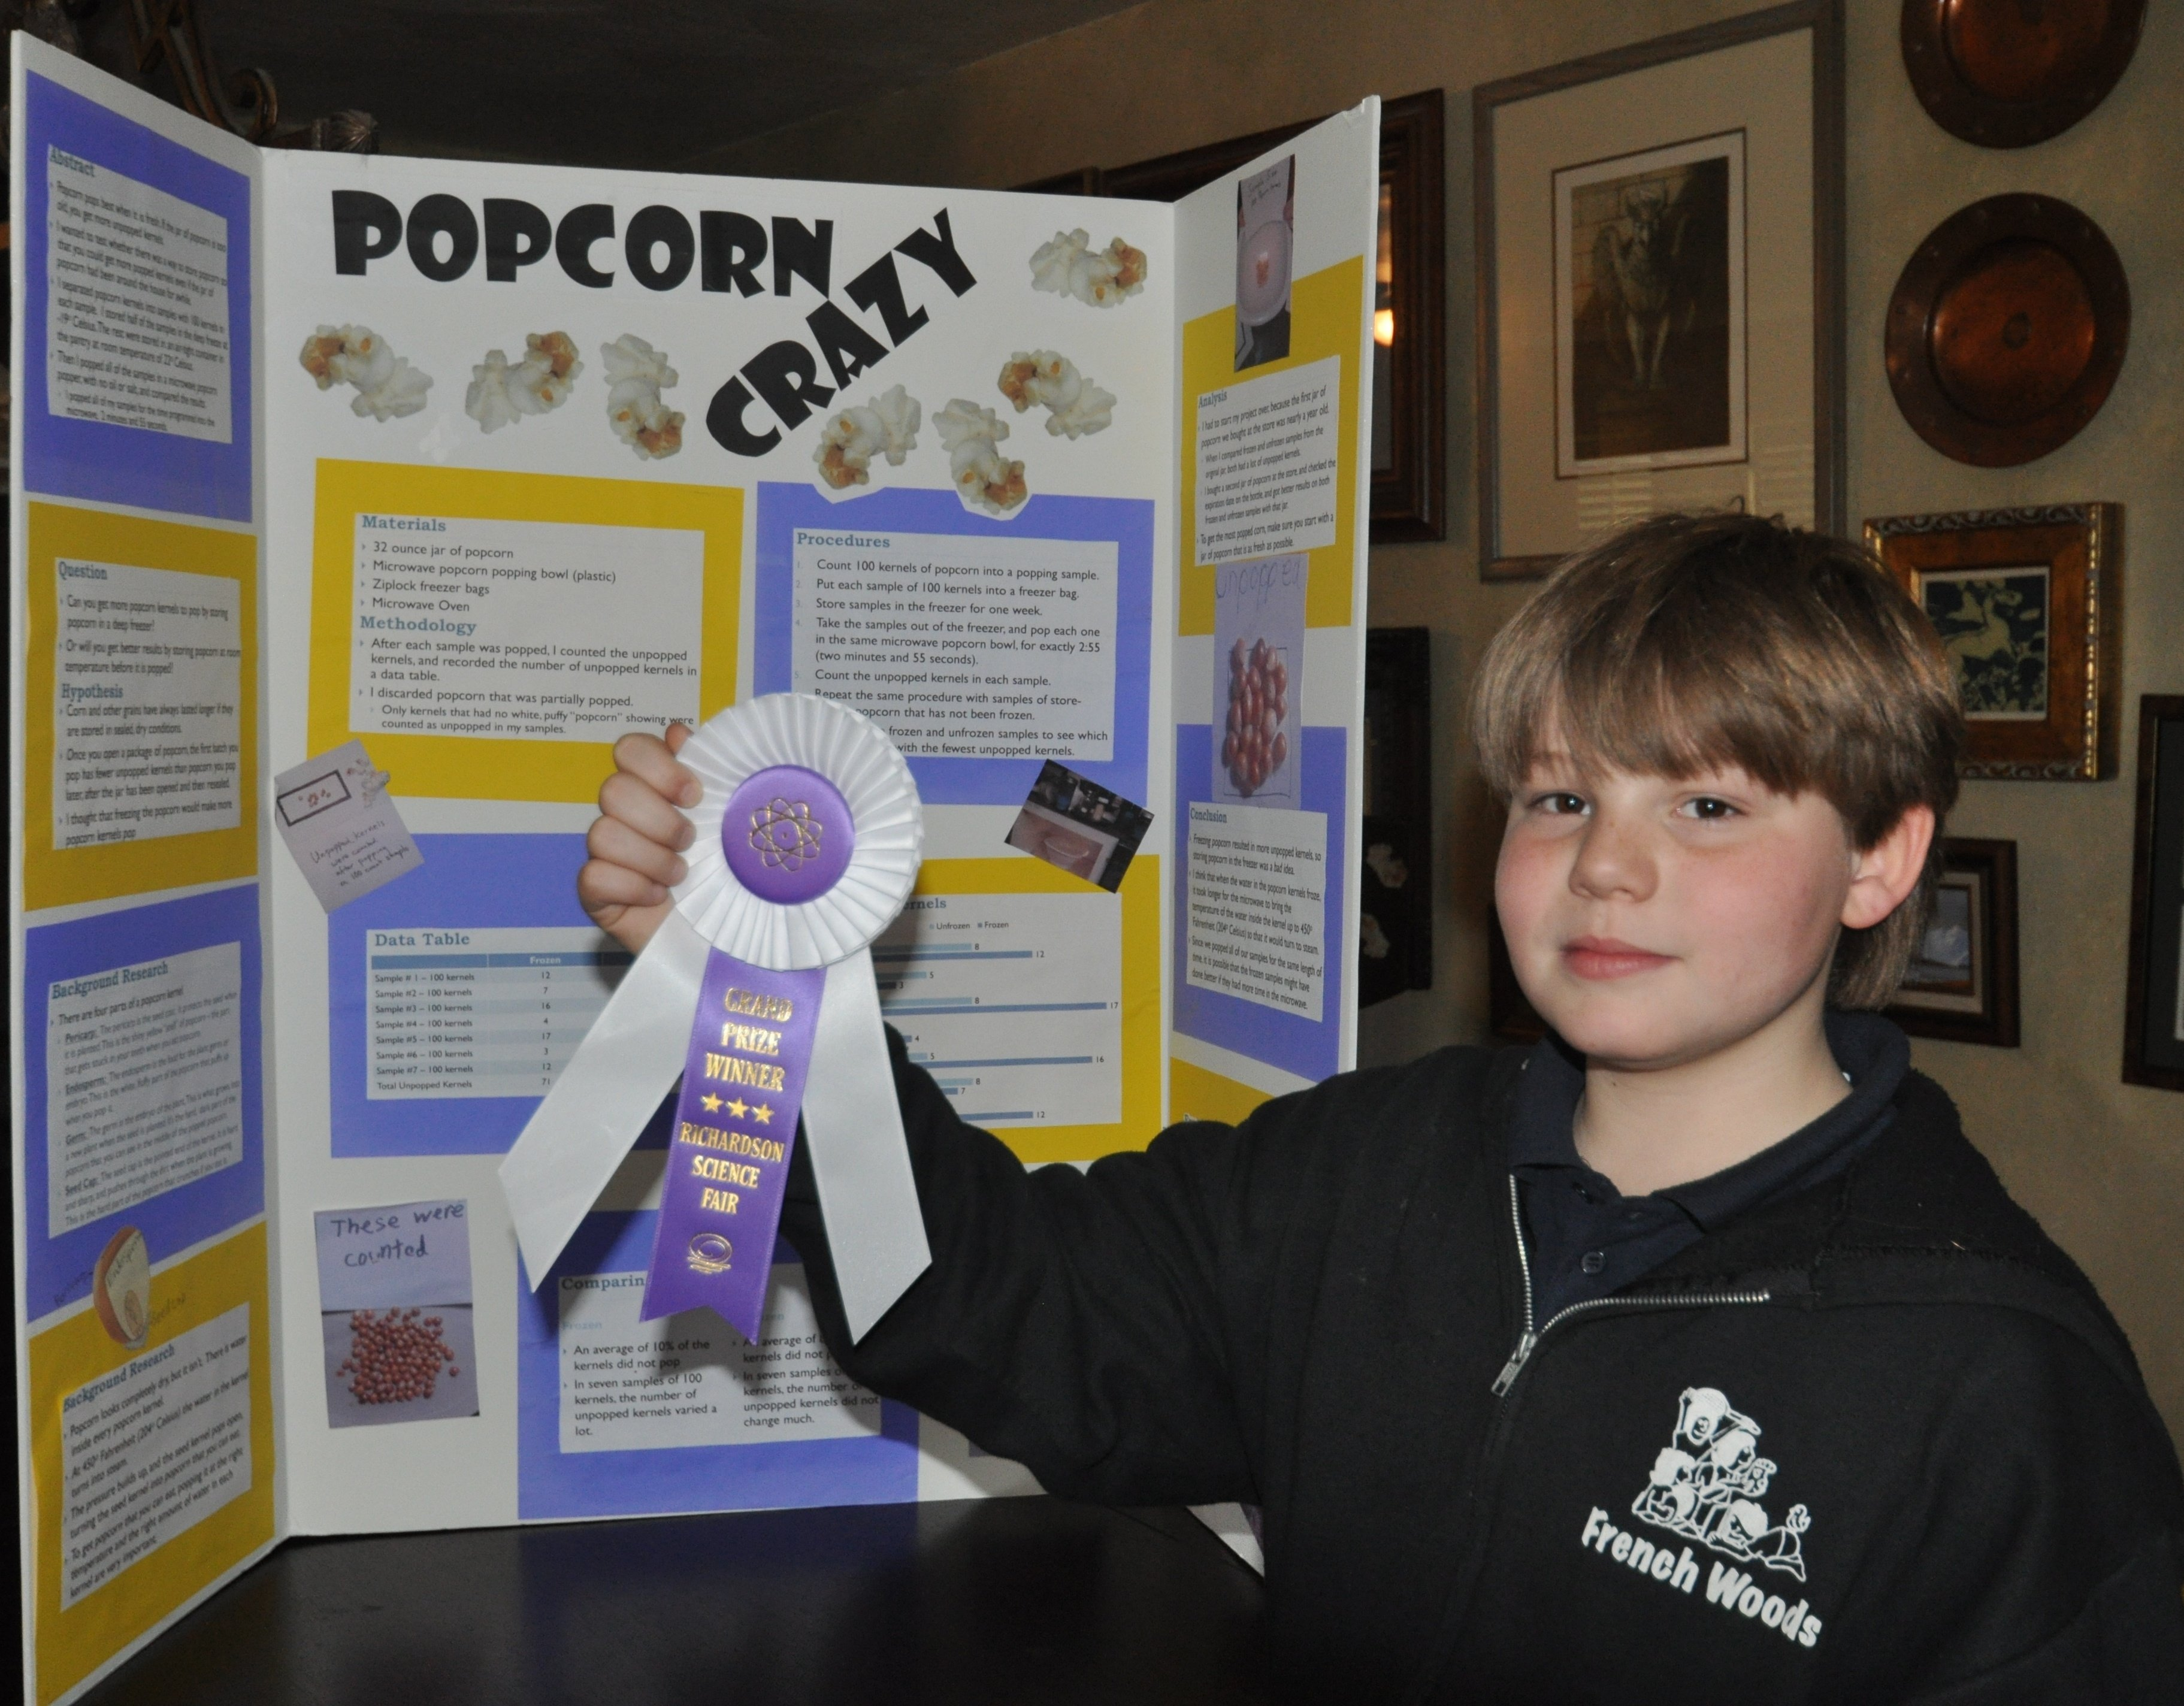 10 Fantastic Science Fair Projects Ideas For 5Th Graders how to help your kid win a science fair marketing where technology 10 2021